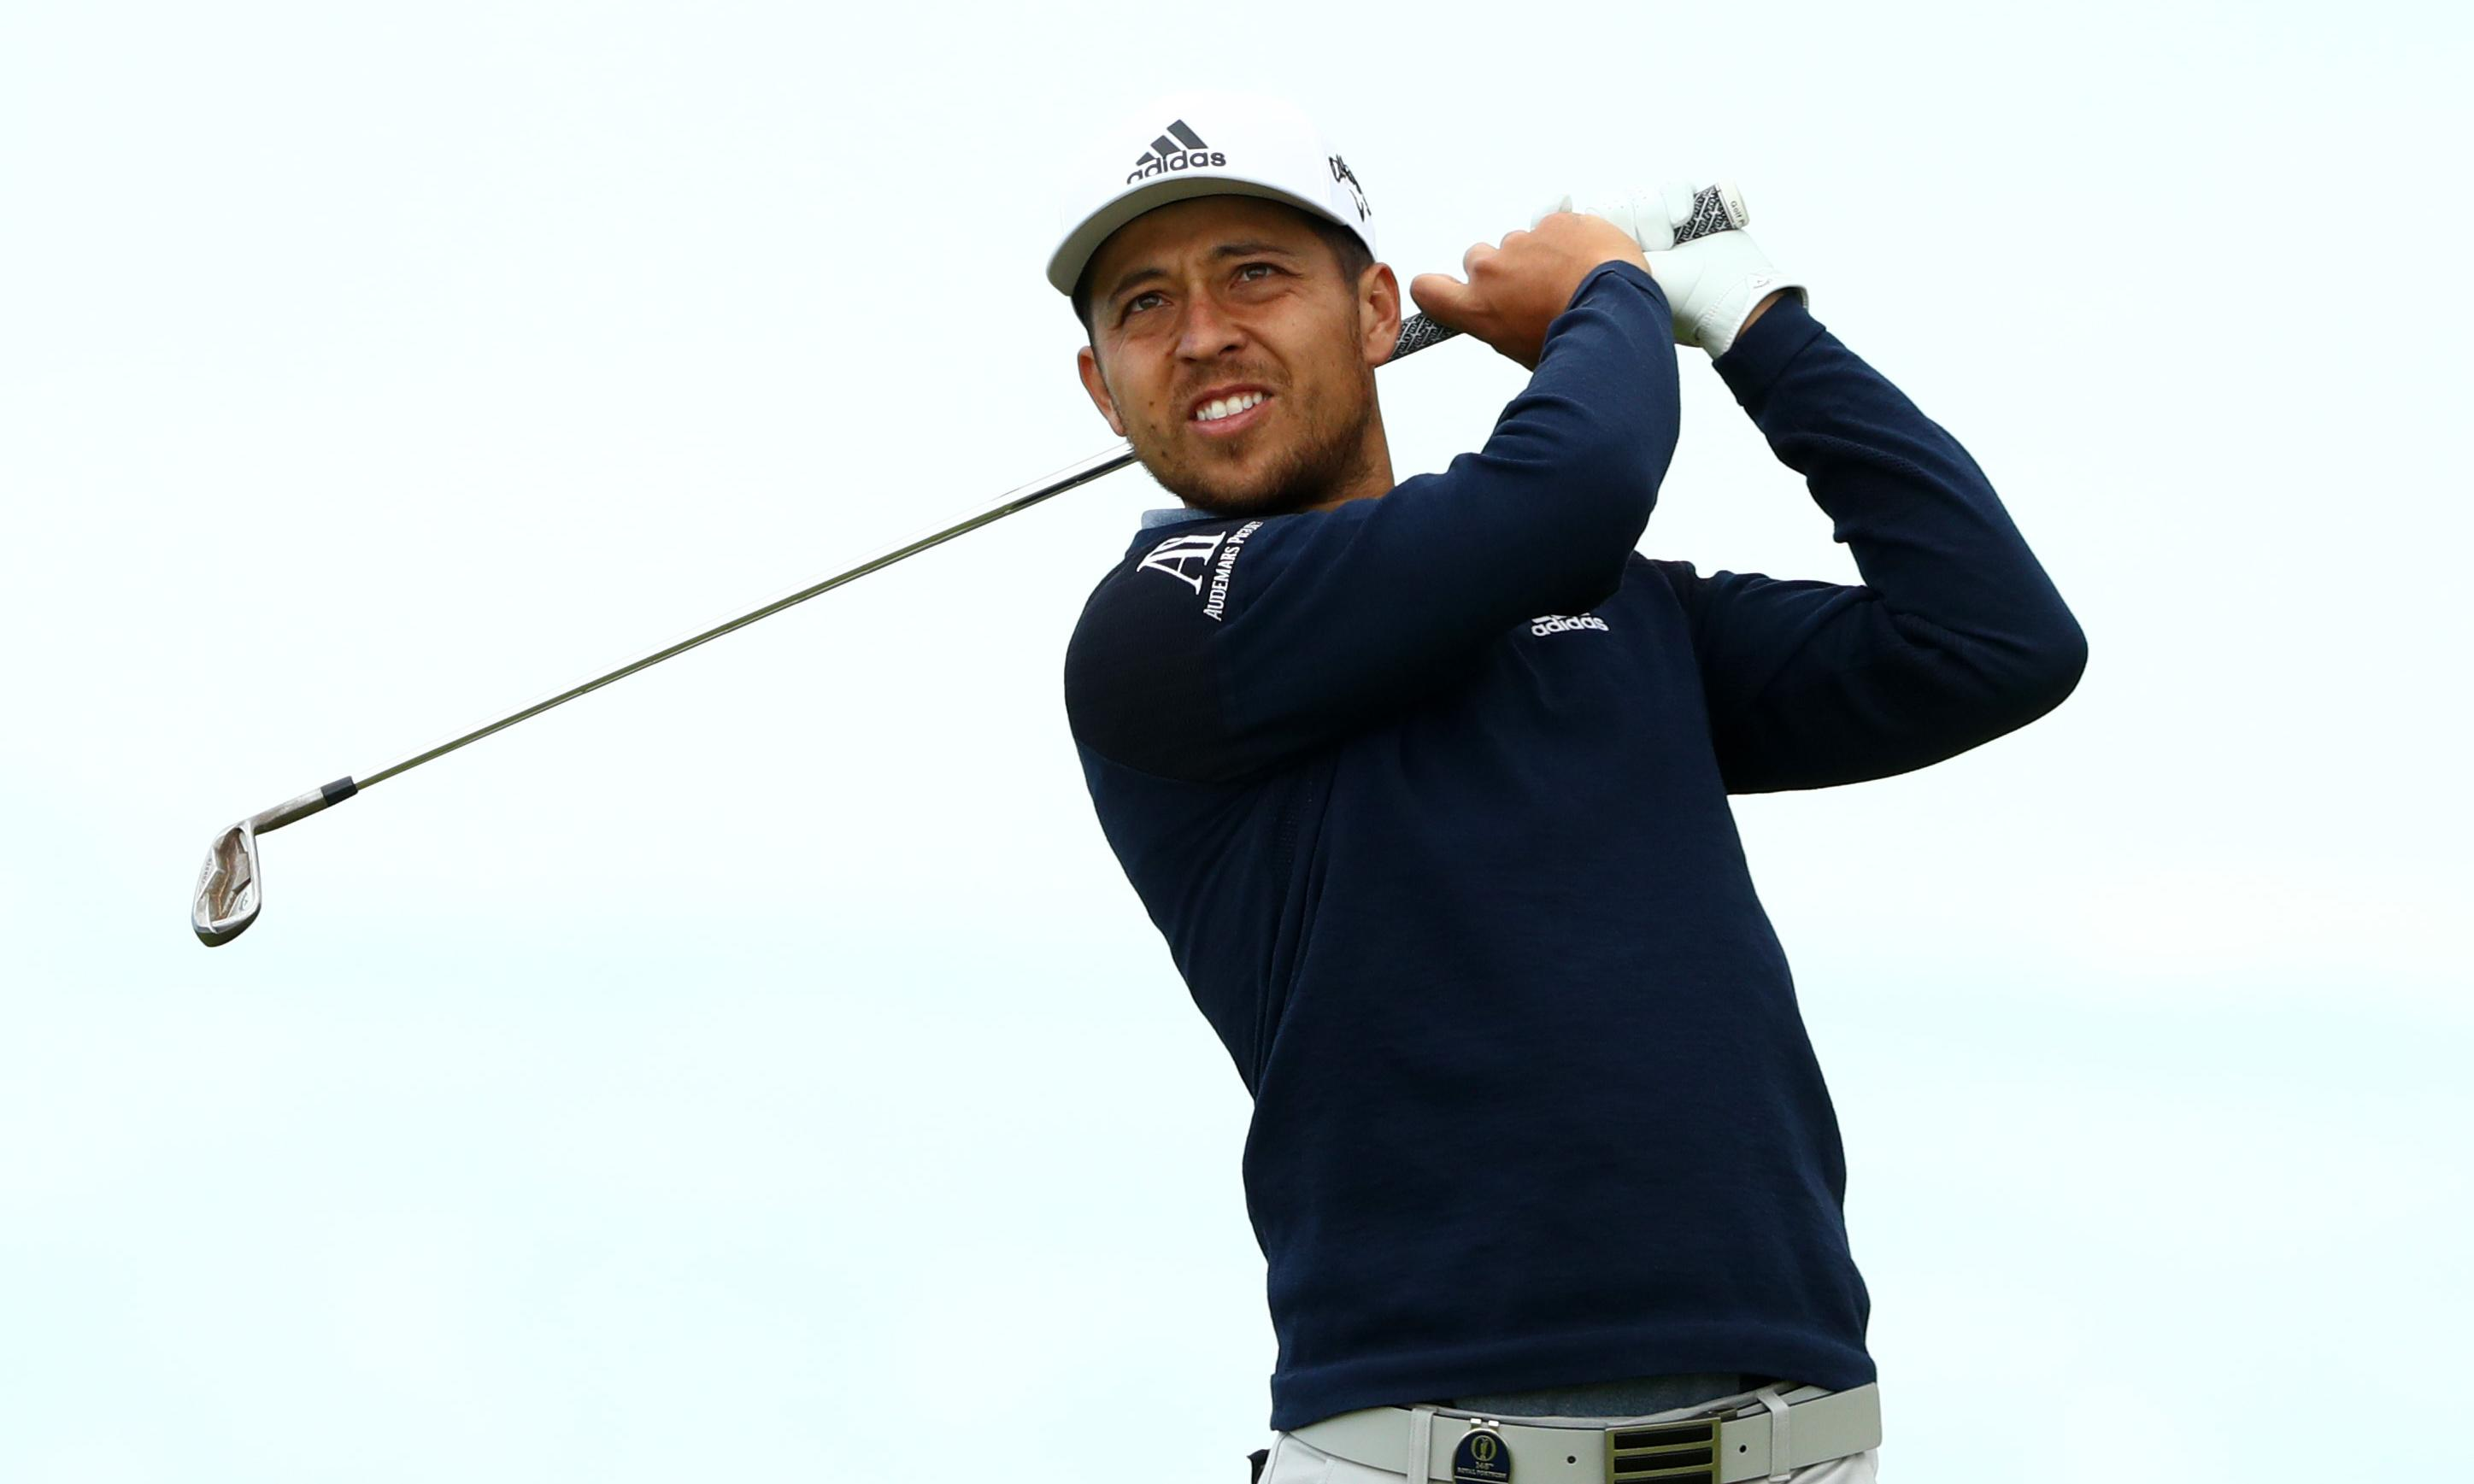 Xander Schauffele lets rip at R&A for declaring his driver illegal